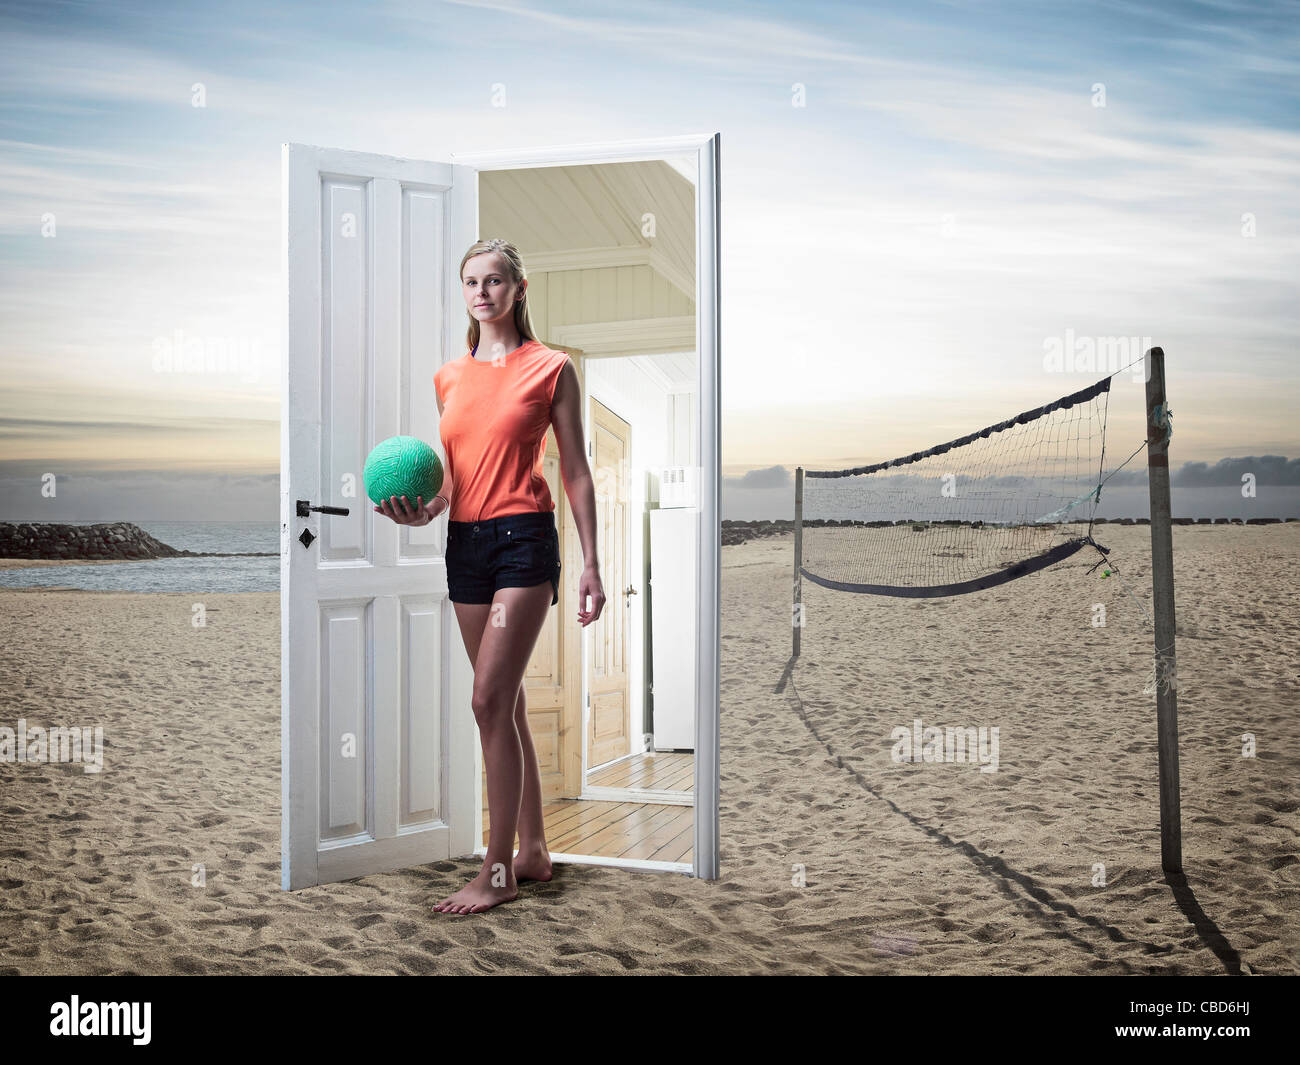 Woman emerging from door on beach - Stock Image